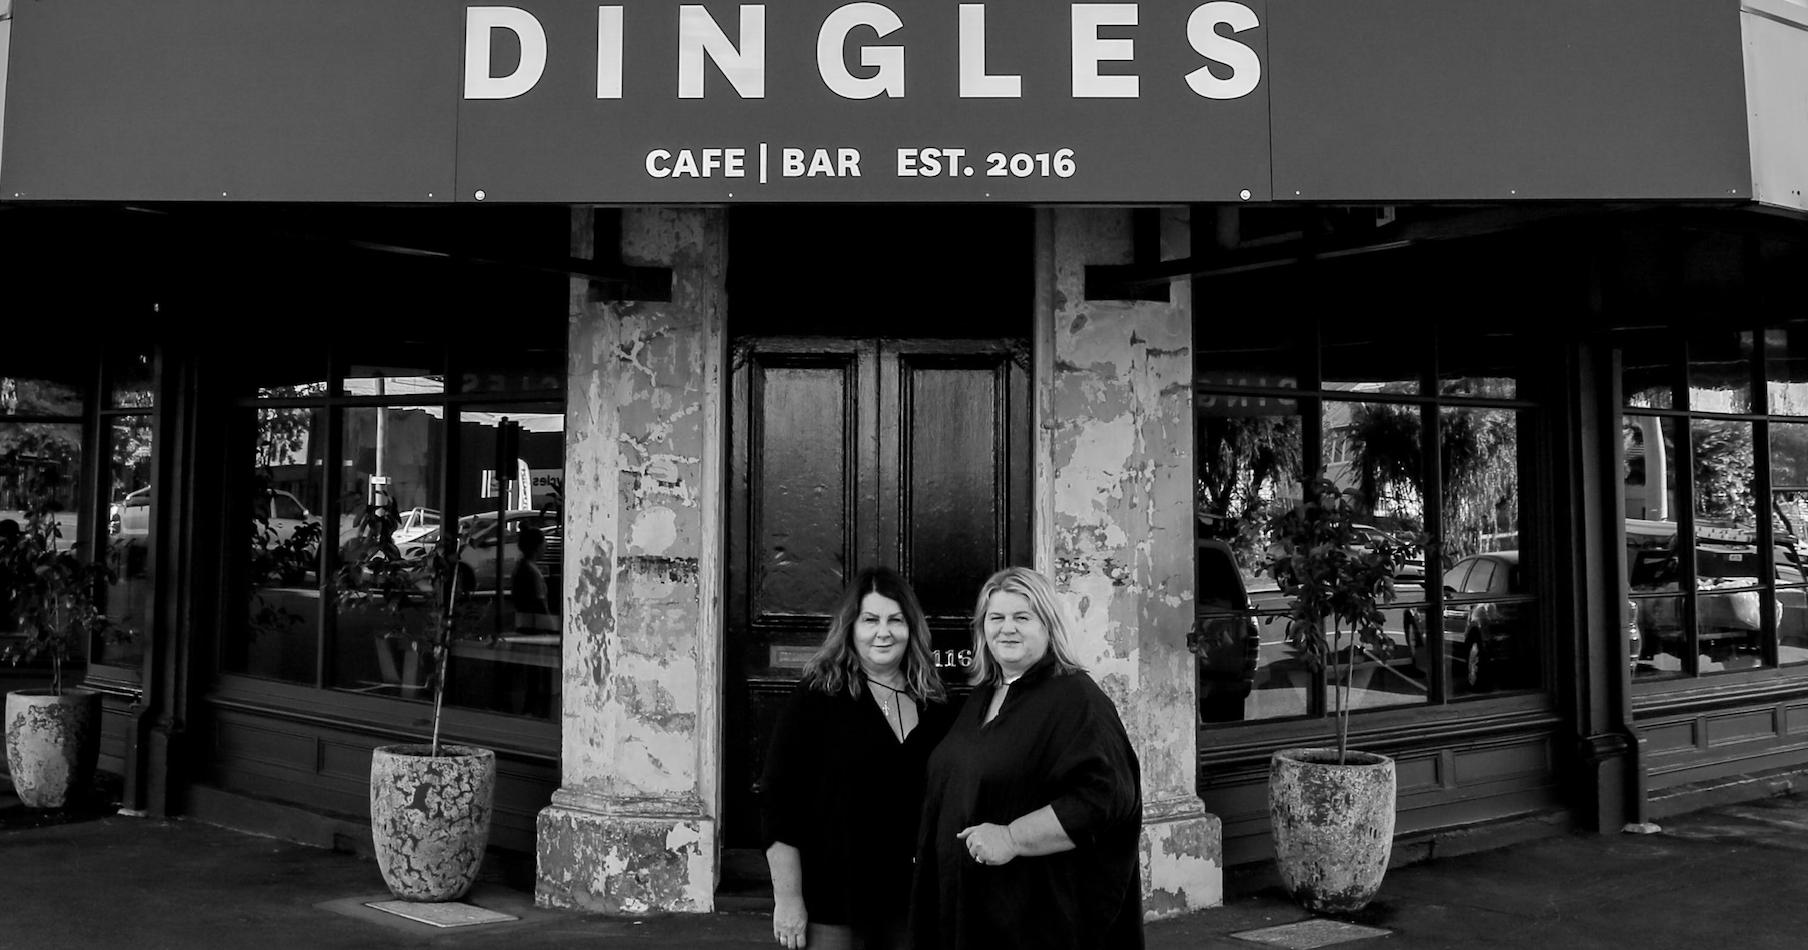 Dingles Cafe & Bar